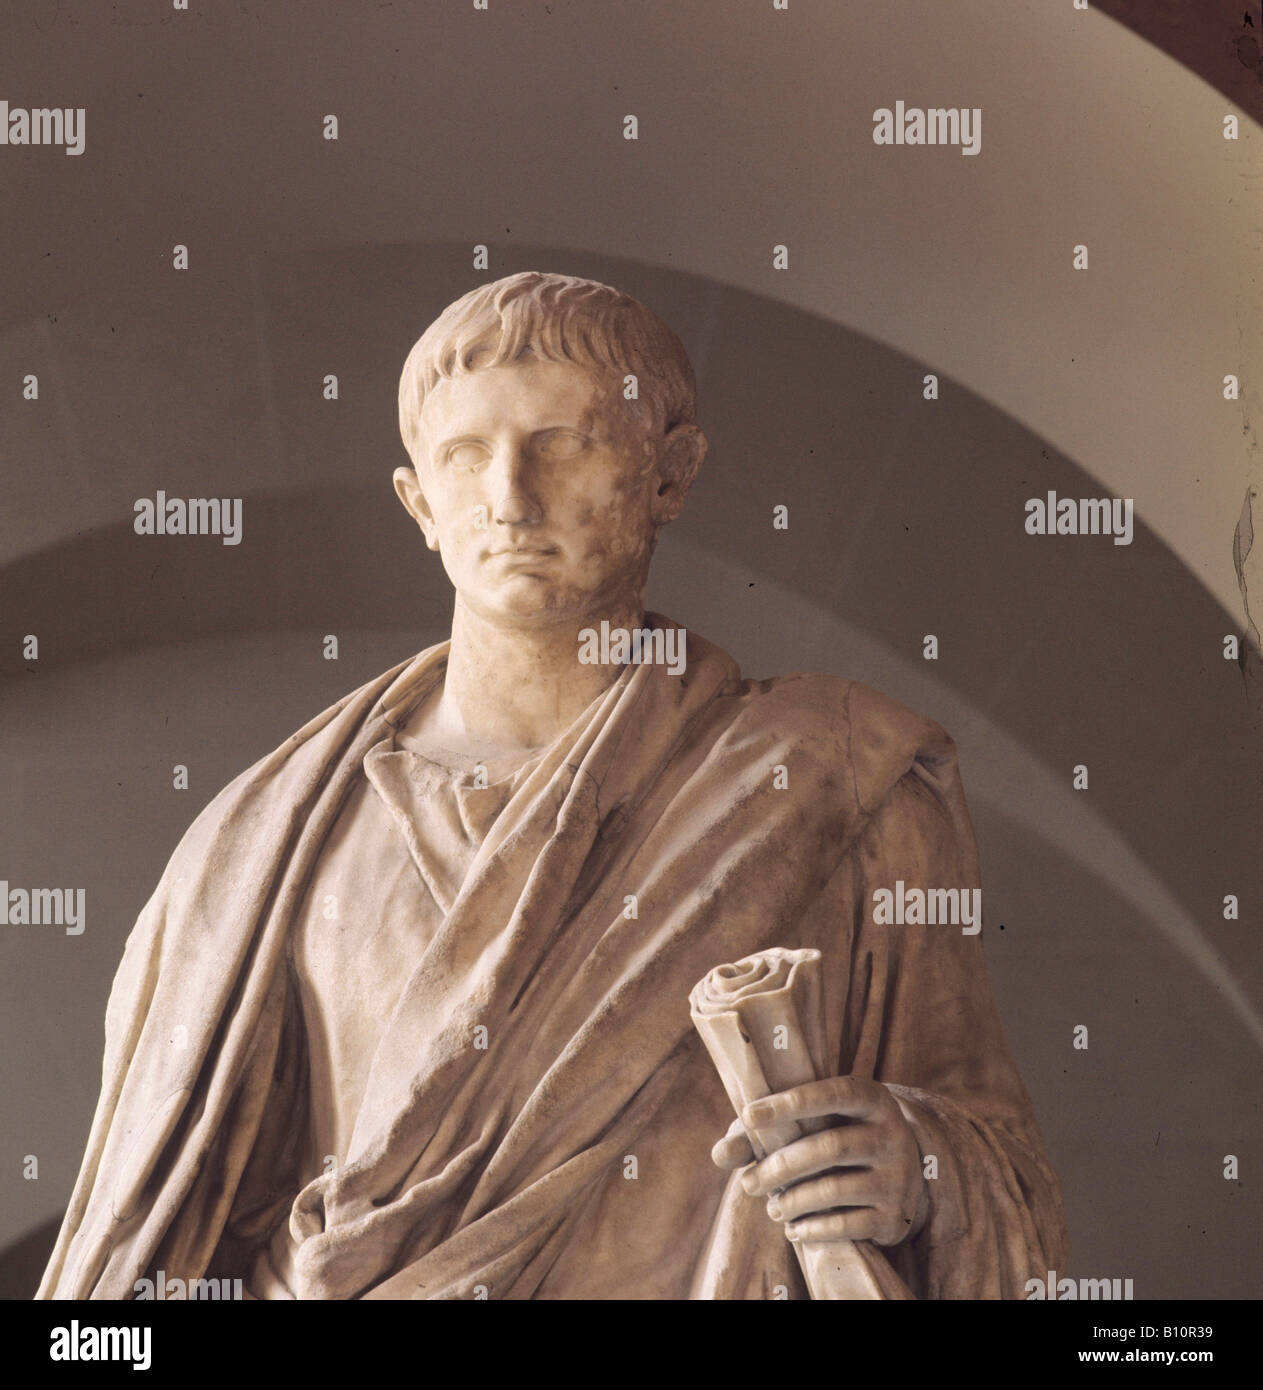 Augustus, 63 BC - 14 AD. Roman Emperor after 27 BC. - Stock Image